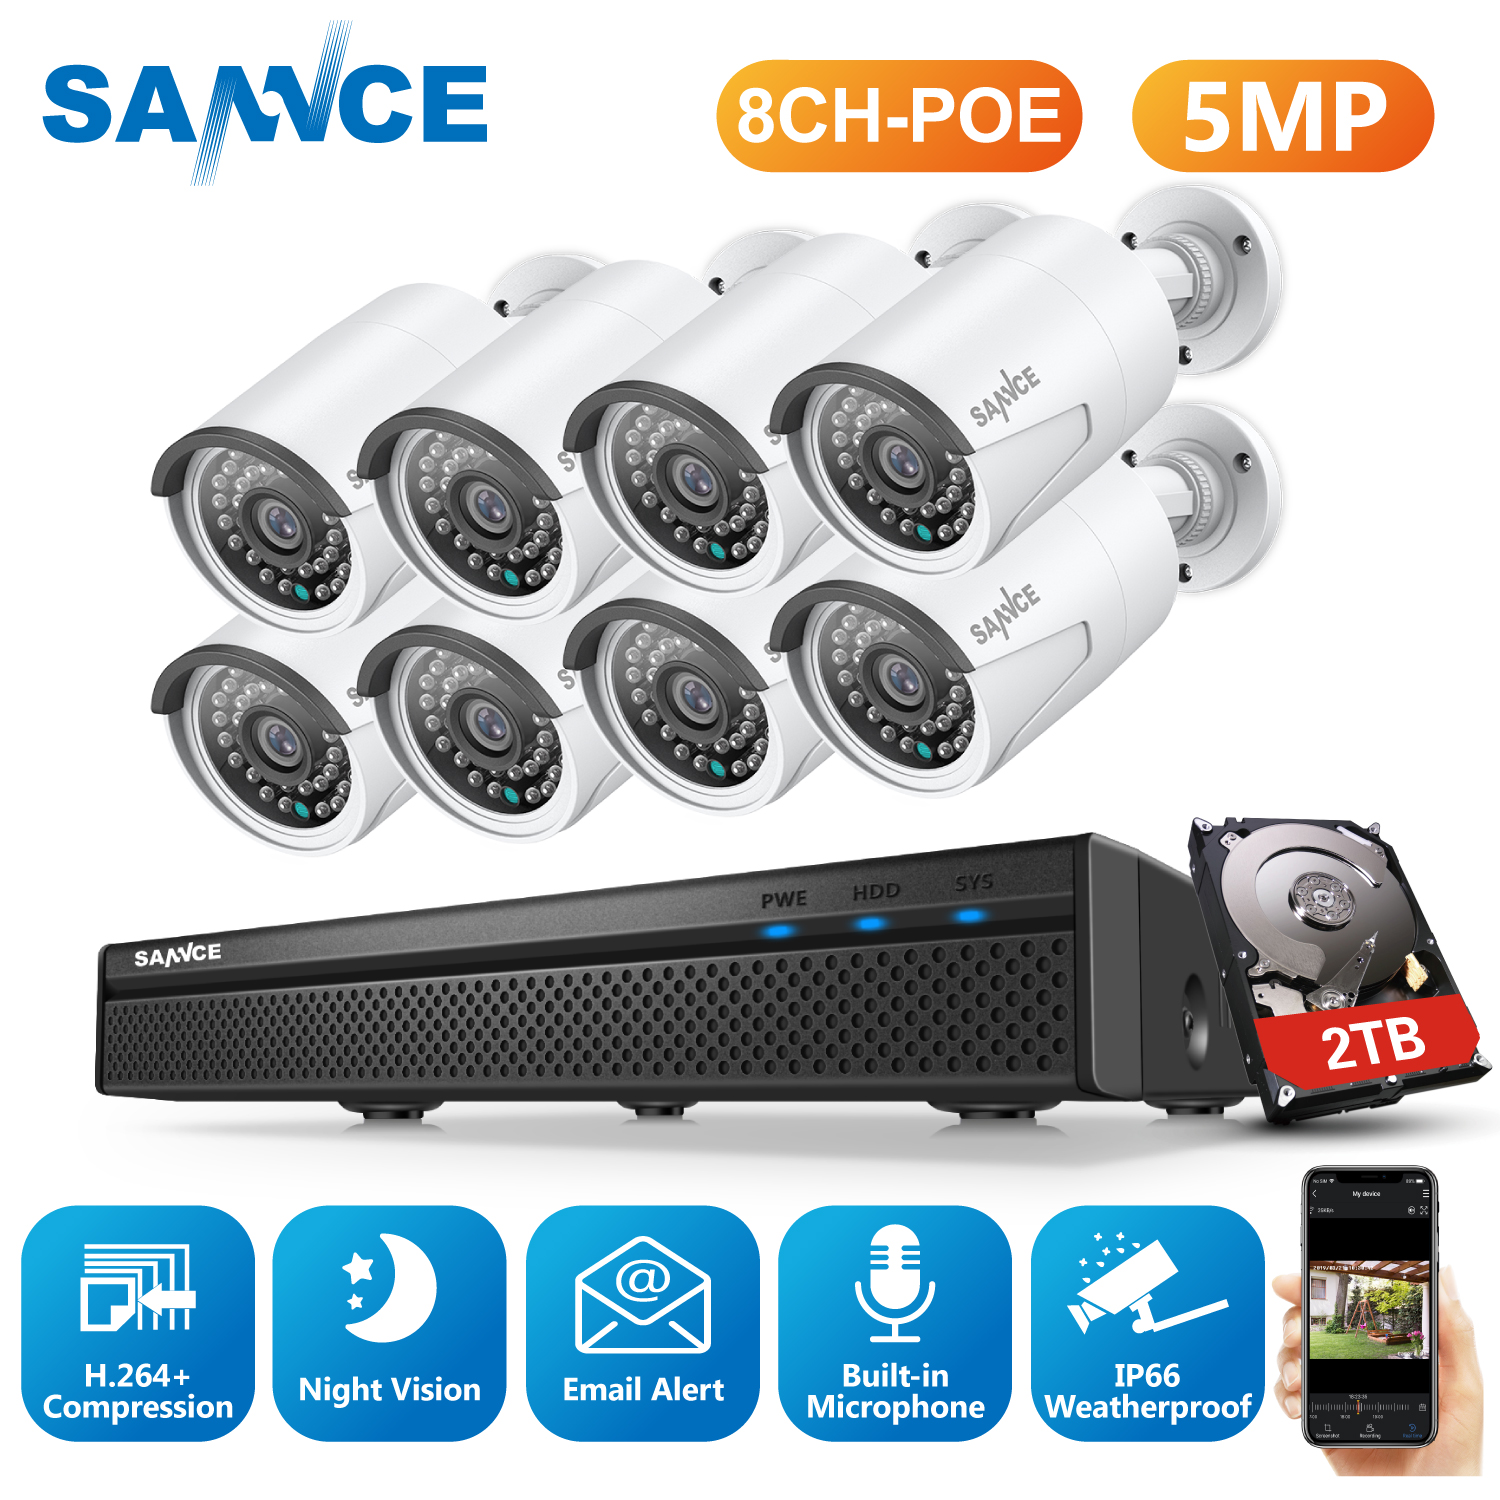 SANNCE 8CH 5MP HD POE Network Video Security System 5MP H.265 NVR With 8PCS 5MP 30M EXIR Night Vision Weatherproof IP Camera Kit